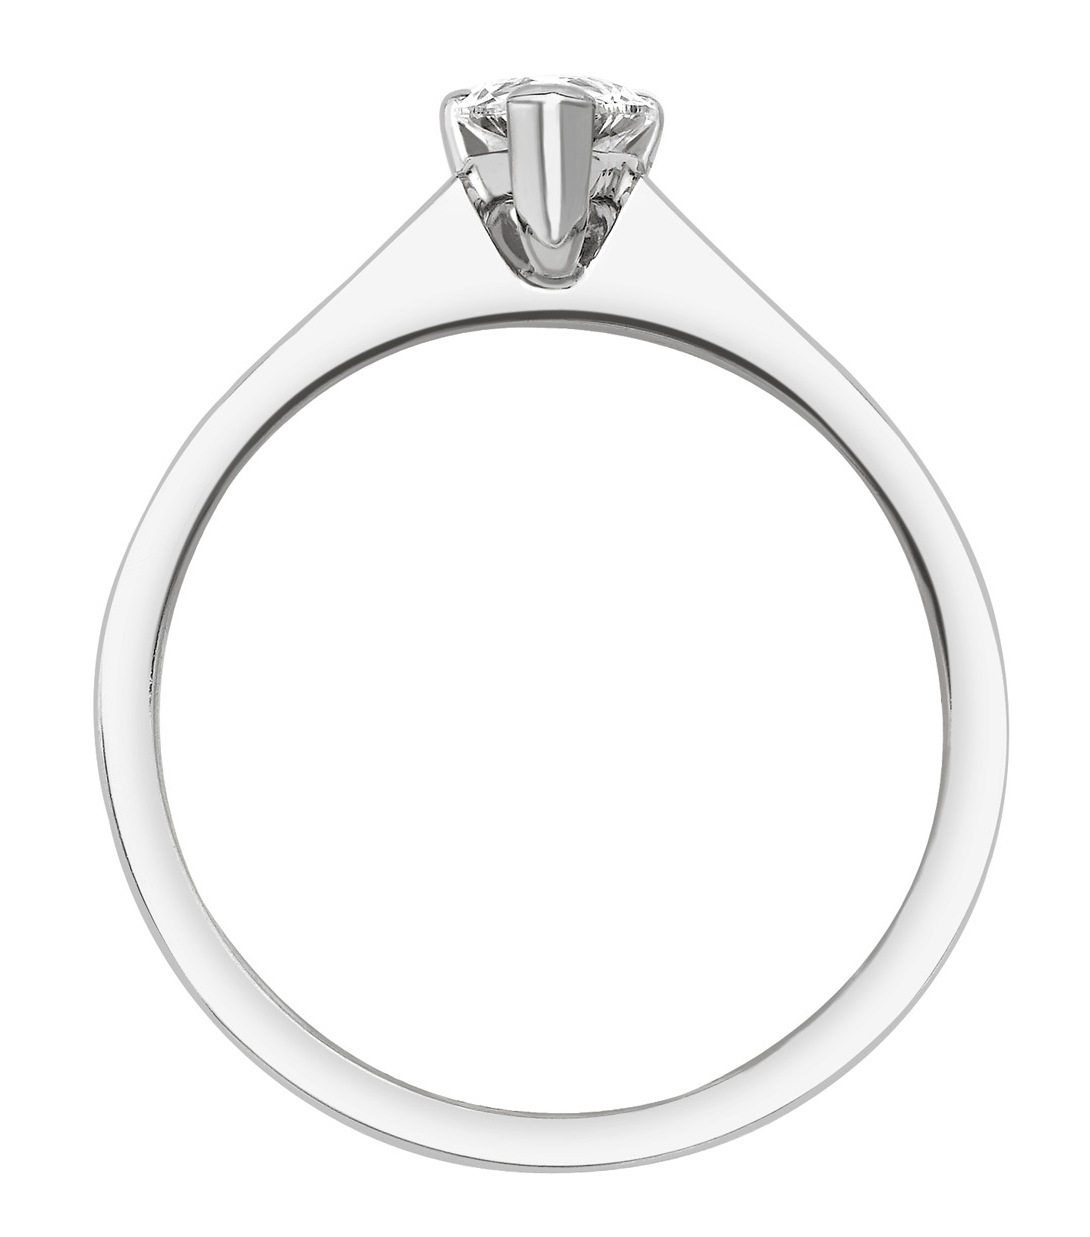 Pear Shape White Gold Ring with Channel Set Shoulders CRC750 Image 2